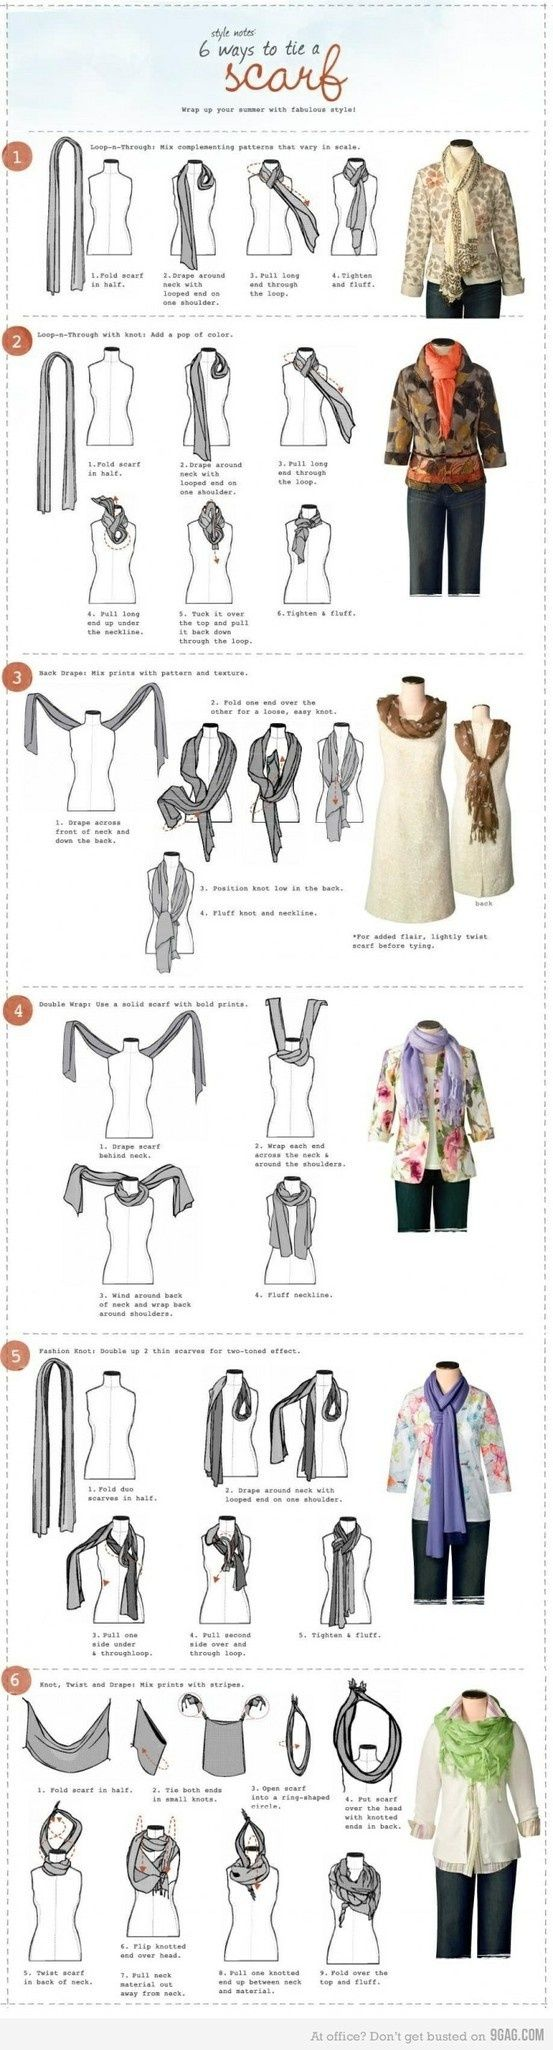 ways to wear scarves by NataliaOblitasV